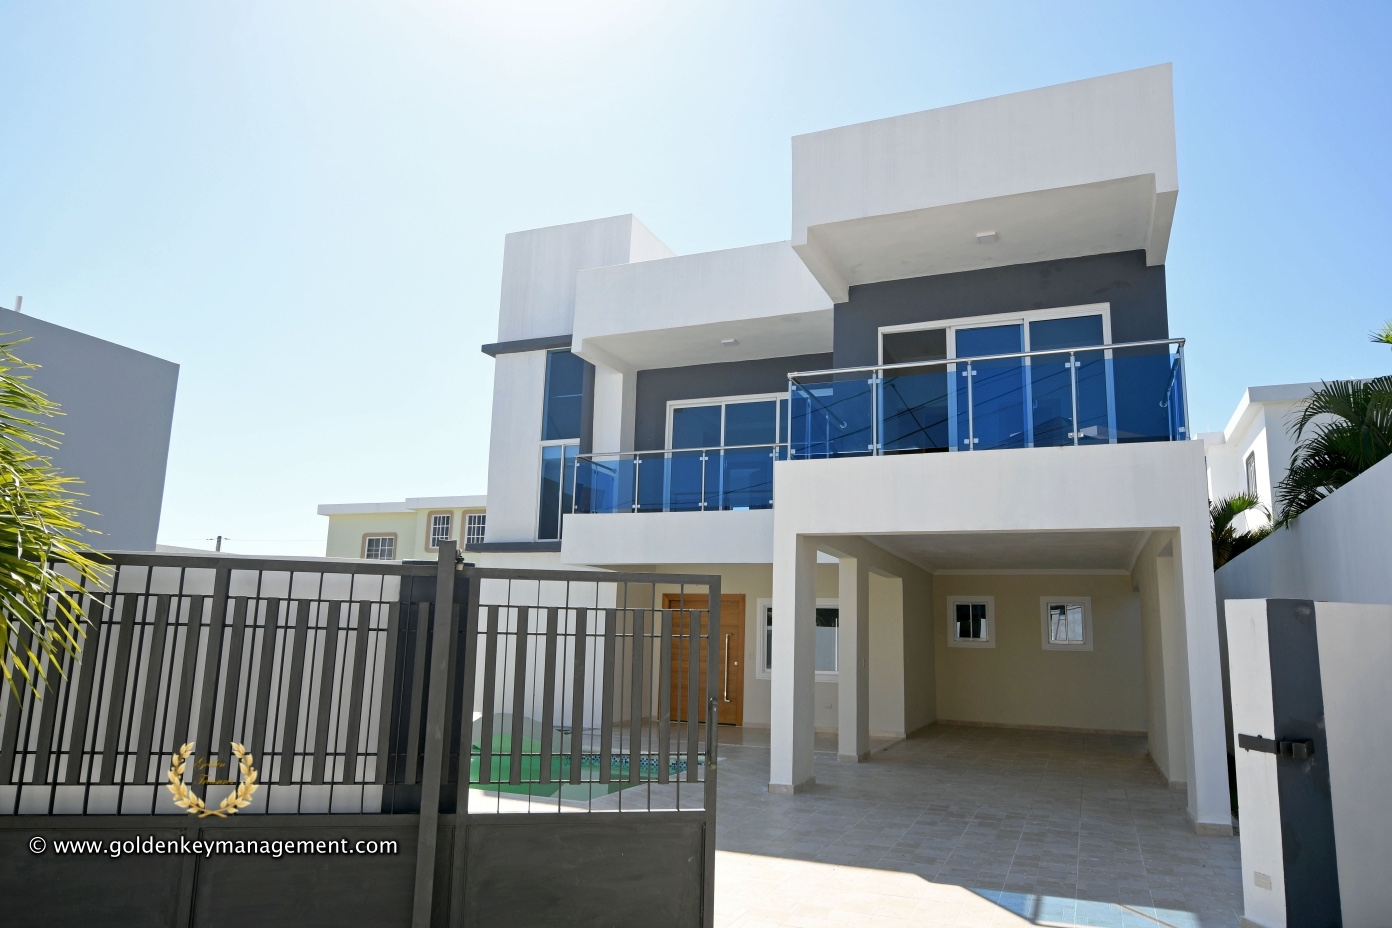 4 Bedroom House Puerto Plata DR